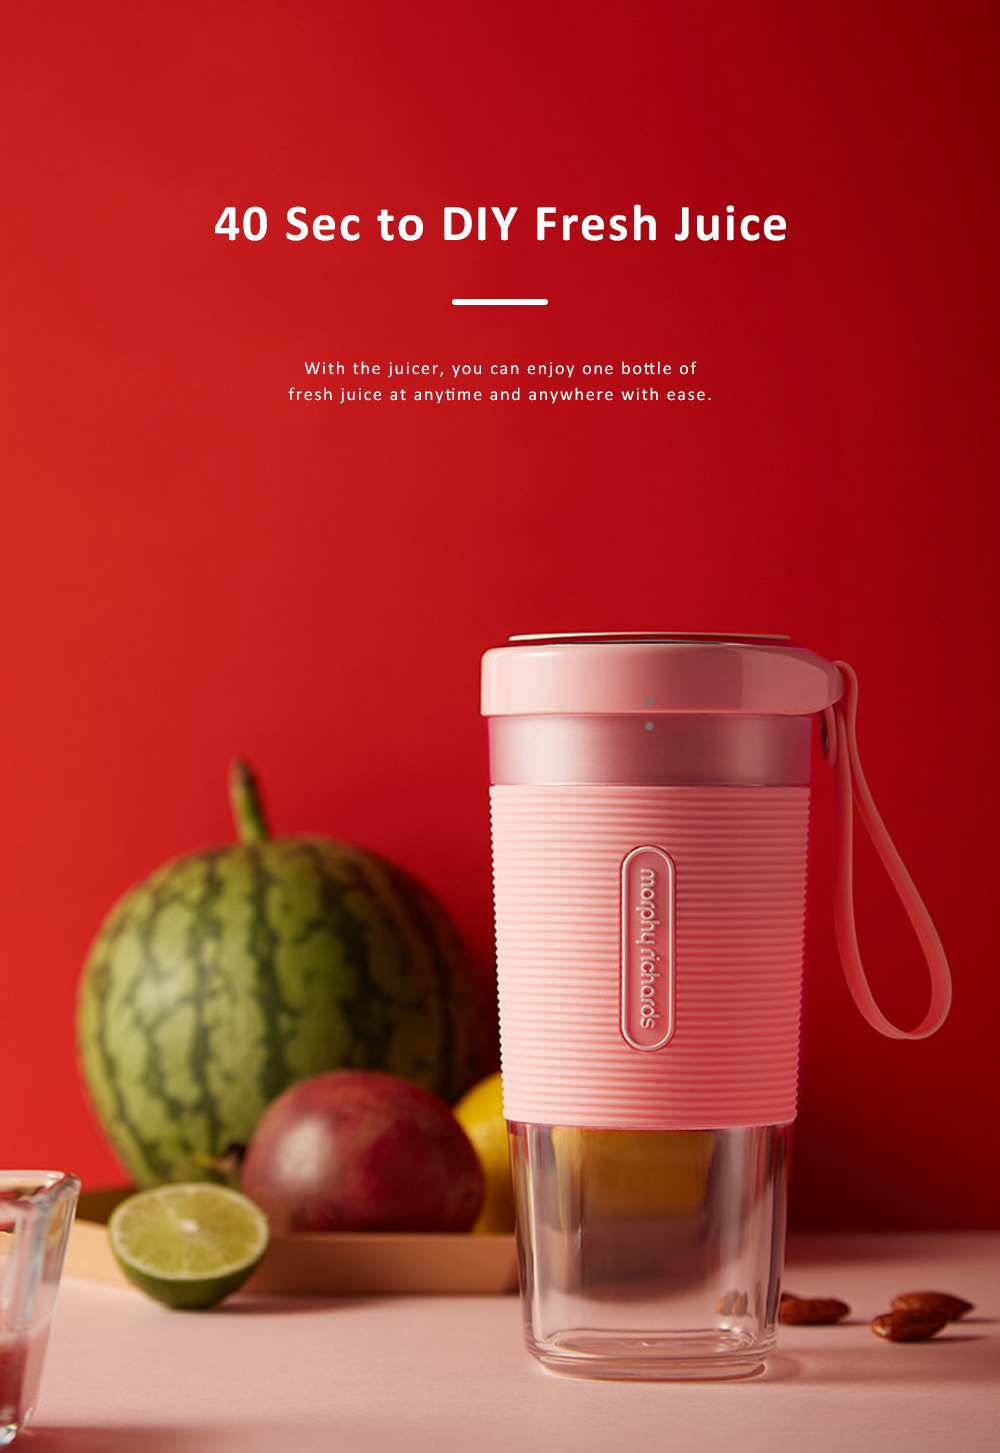 Portable Juicer Household Fruit Juice Cup Mini Electronic Fruit Mixer Juice Maker Food Processor 7